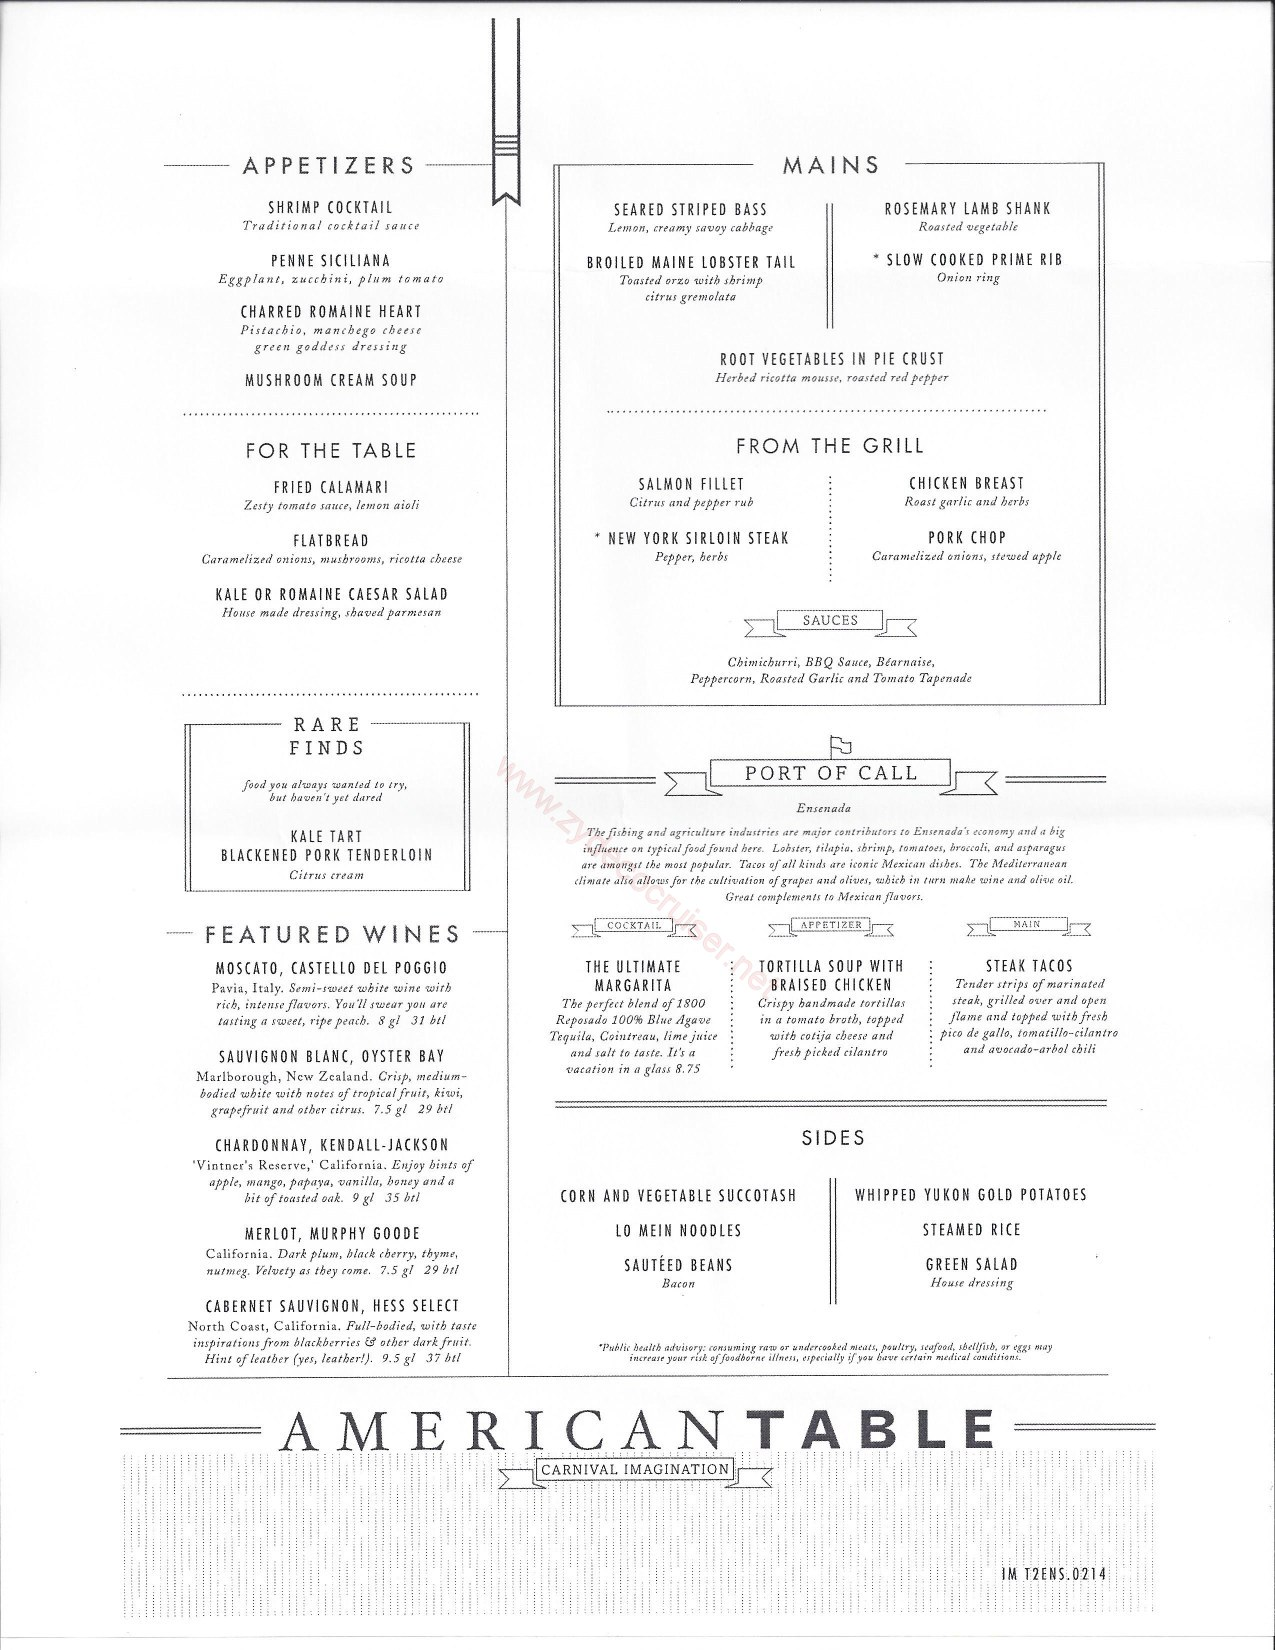 Carnival imagination american table mdr menus ensenada for The table restaurant menu